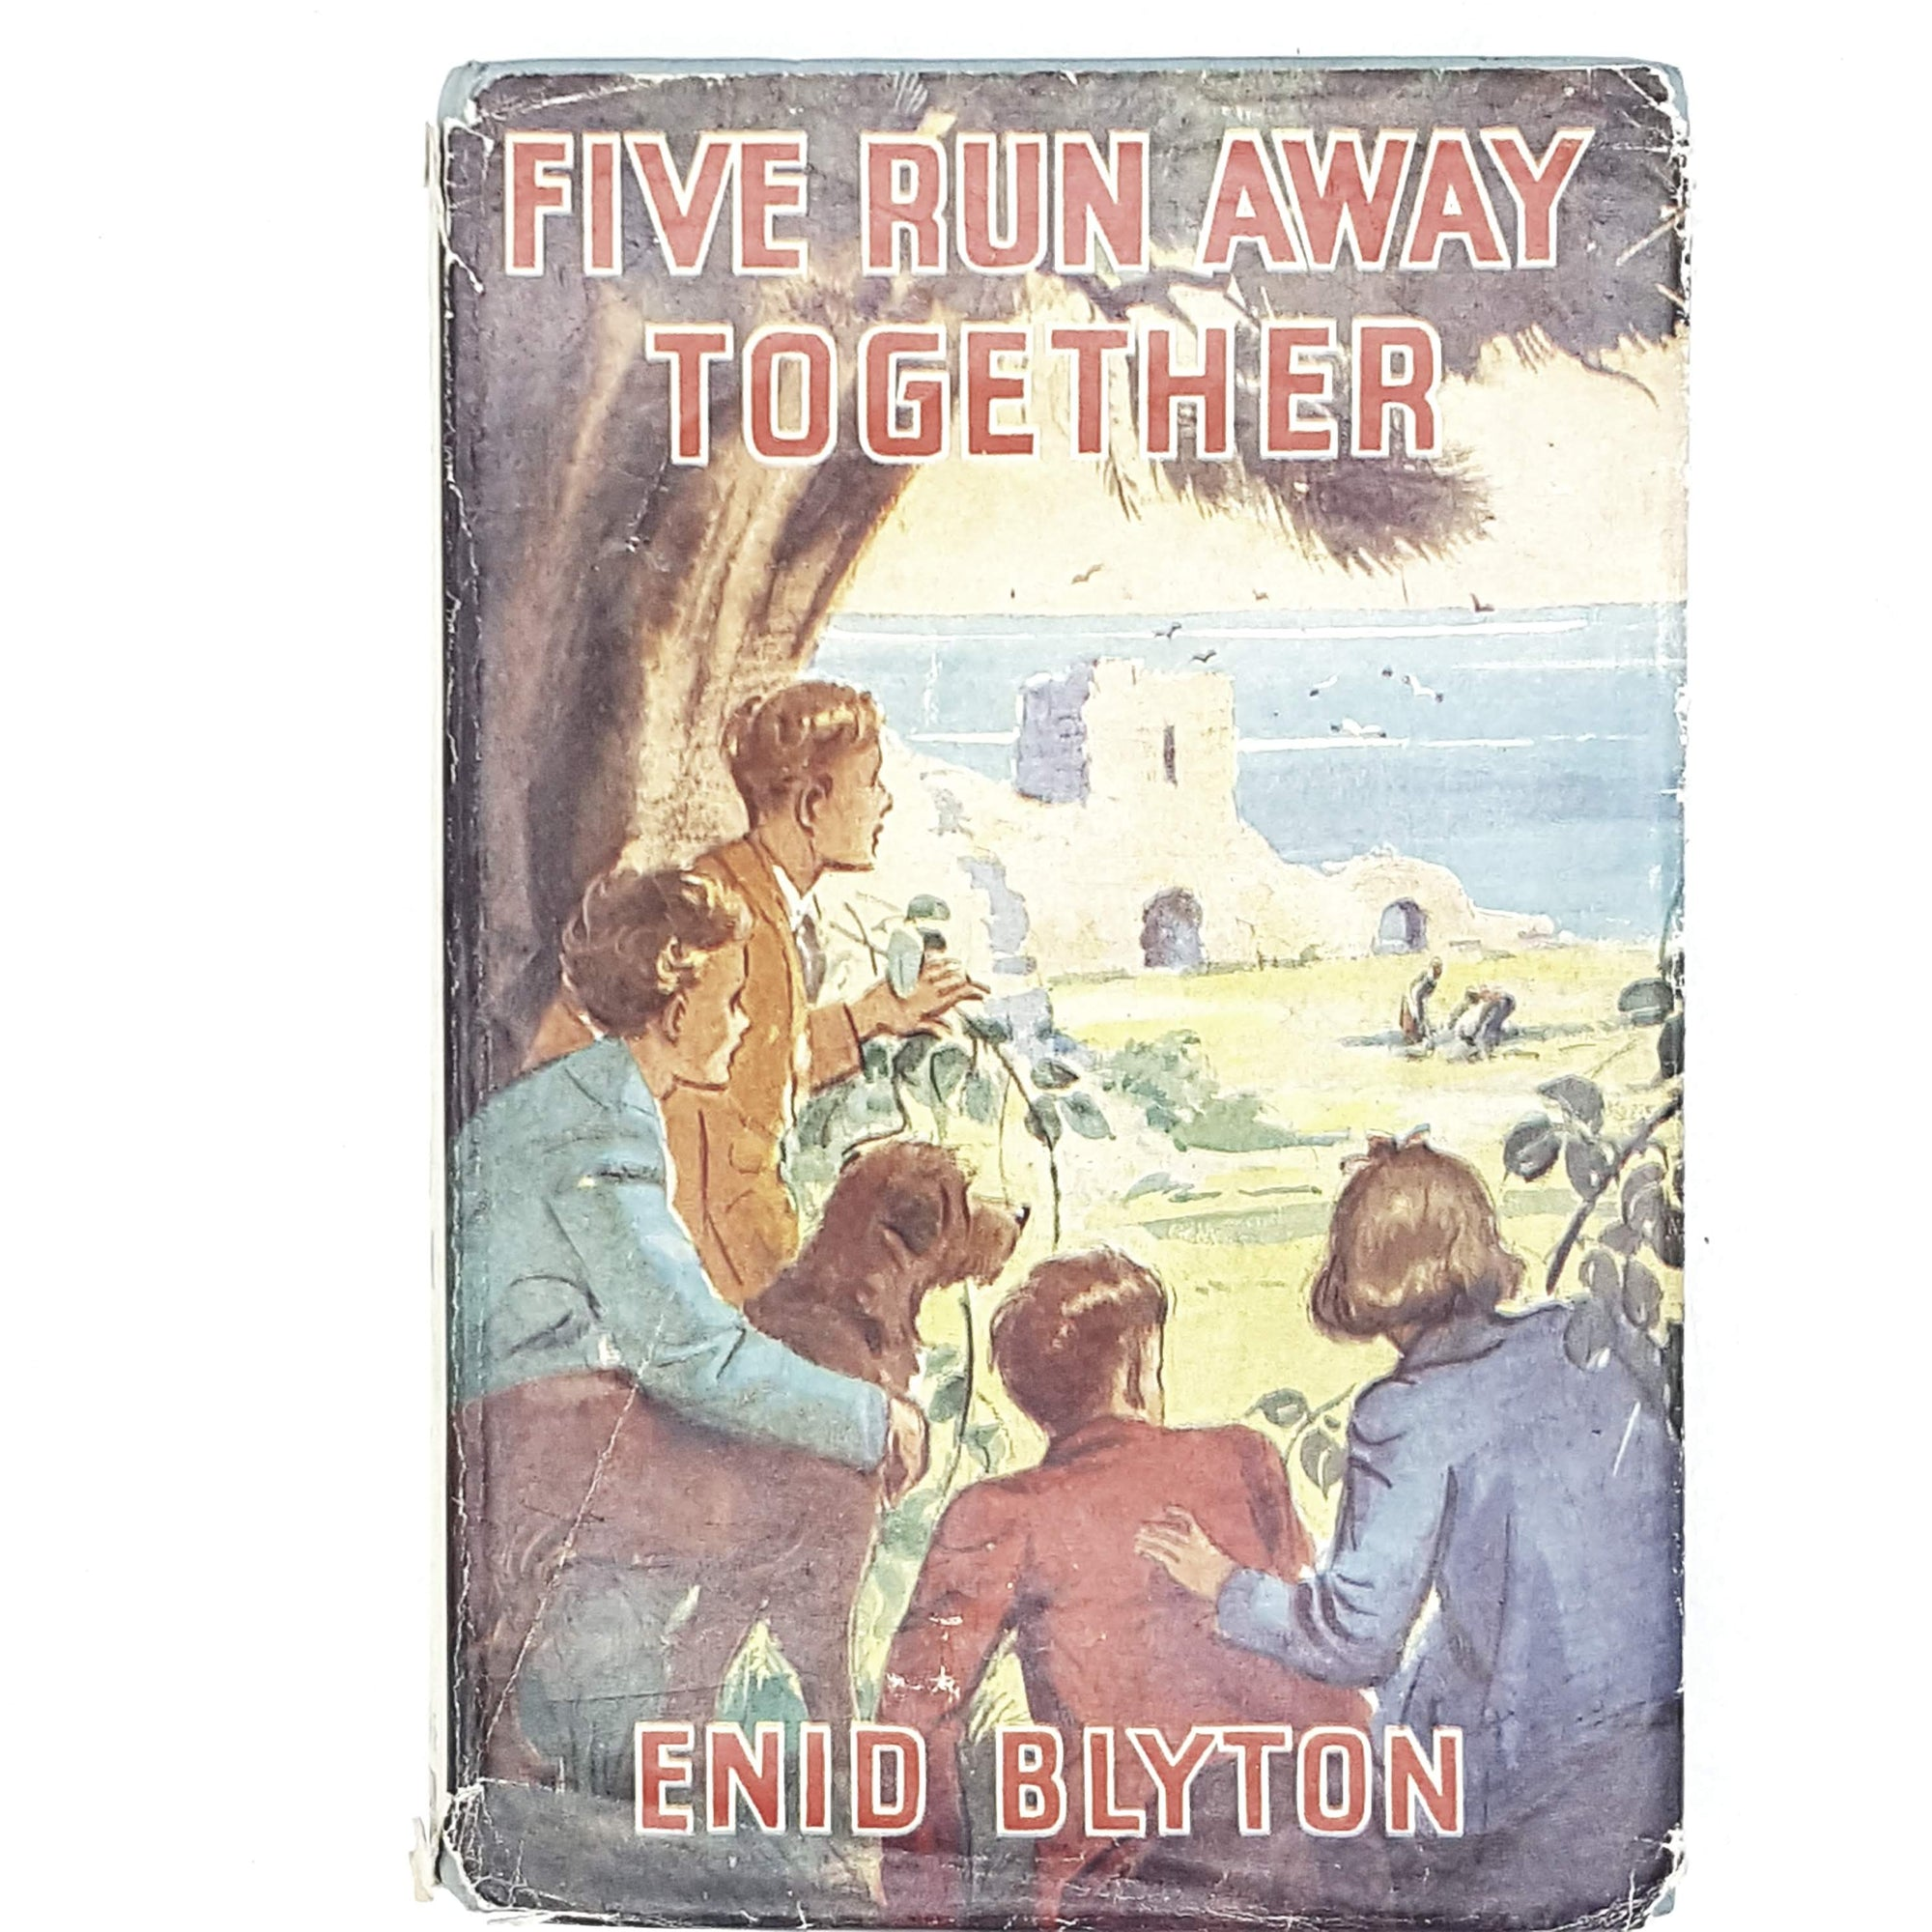 Five Run Away Together by Enid Blyton 1950